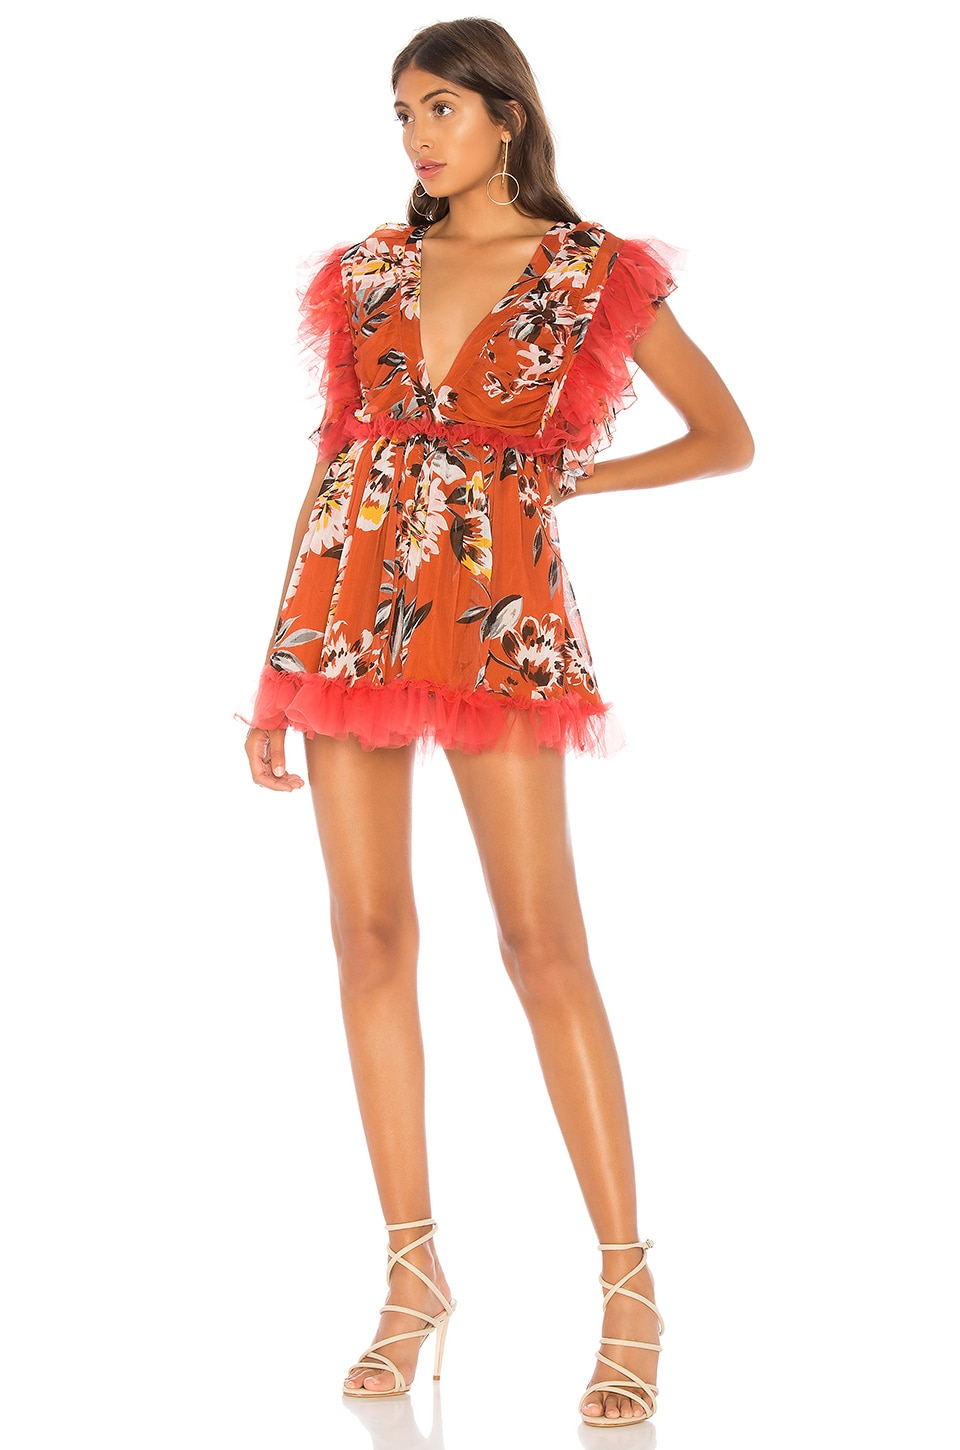 Tularosa Amelia Dress in Orange Dahlia Floral